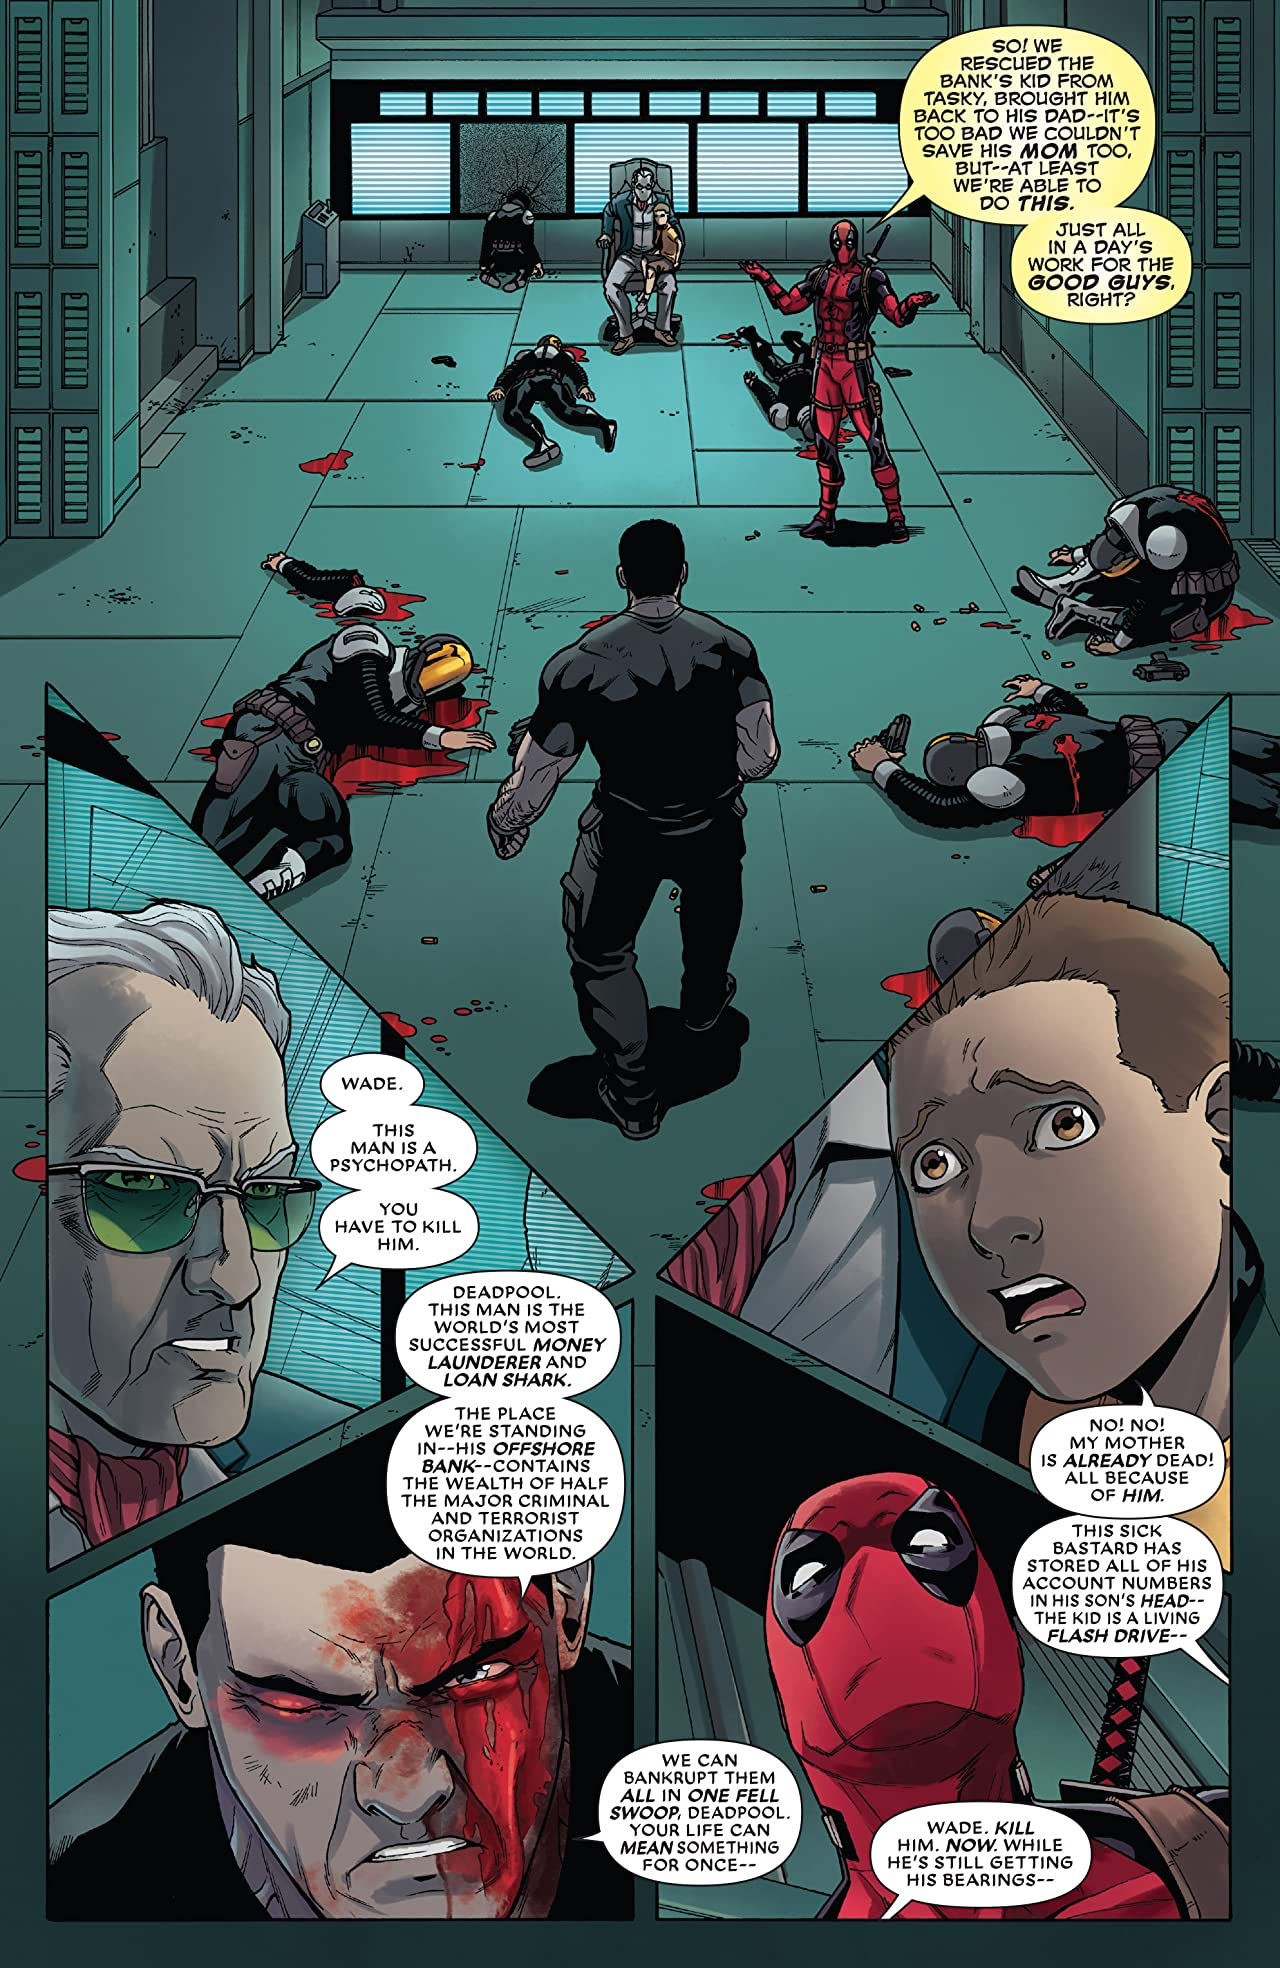 Deadpool vs. The Punisher (2017) #5 (of 5)